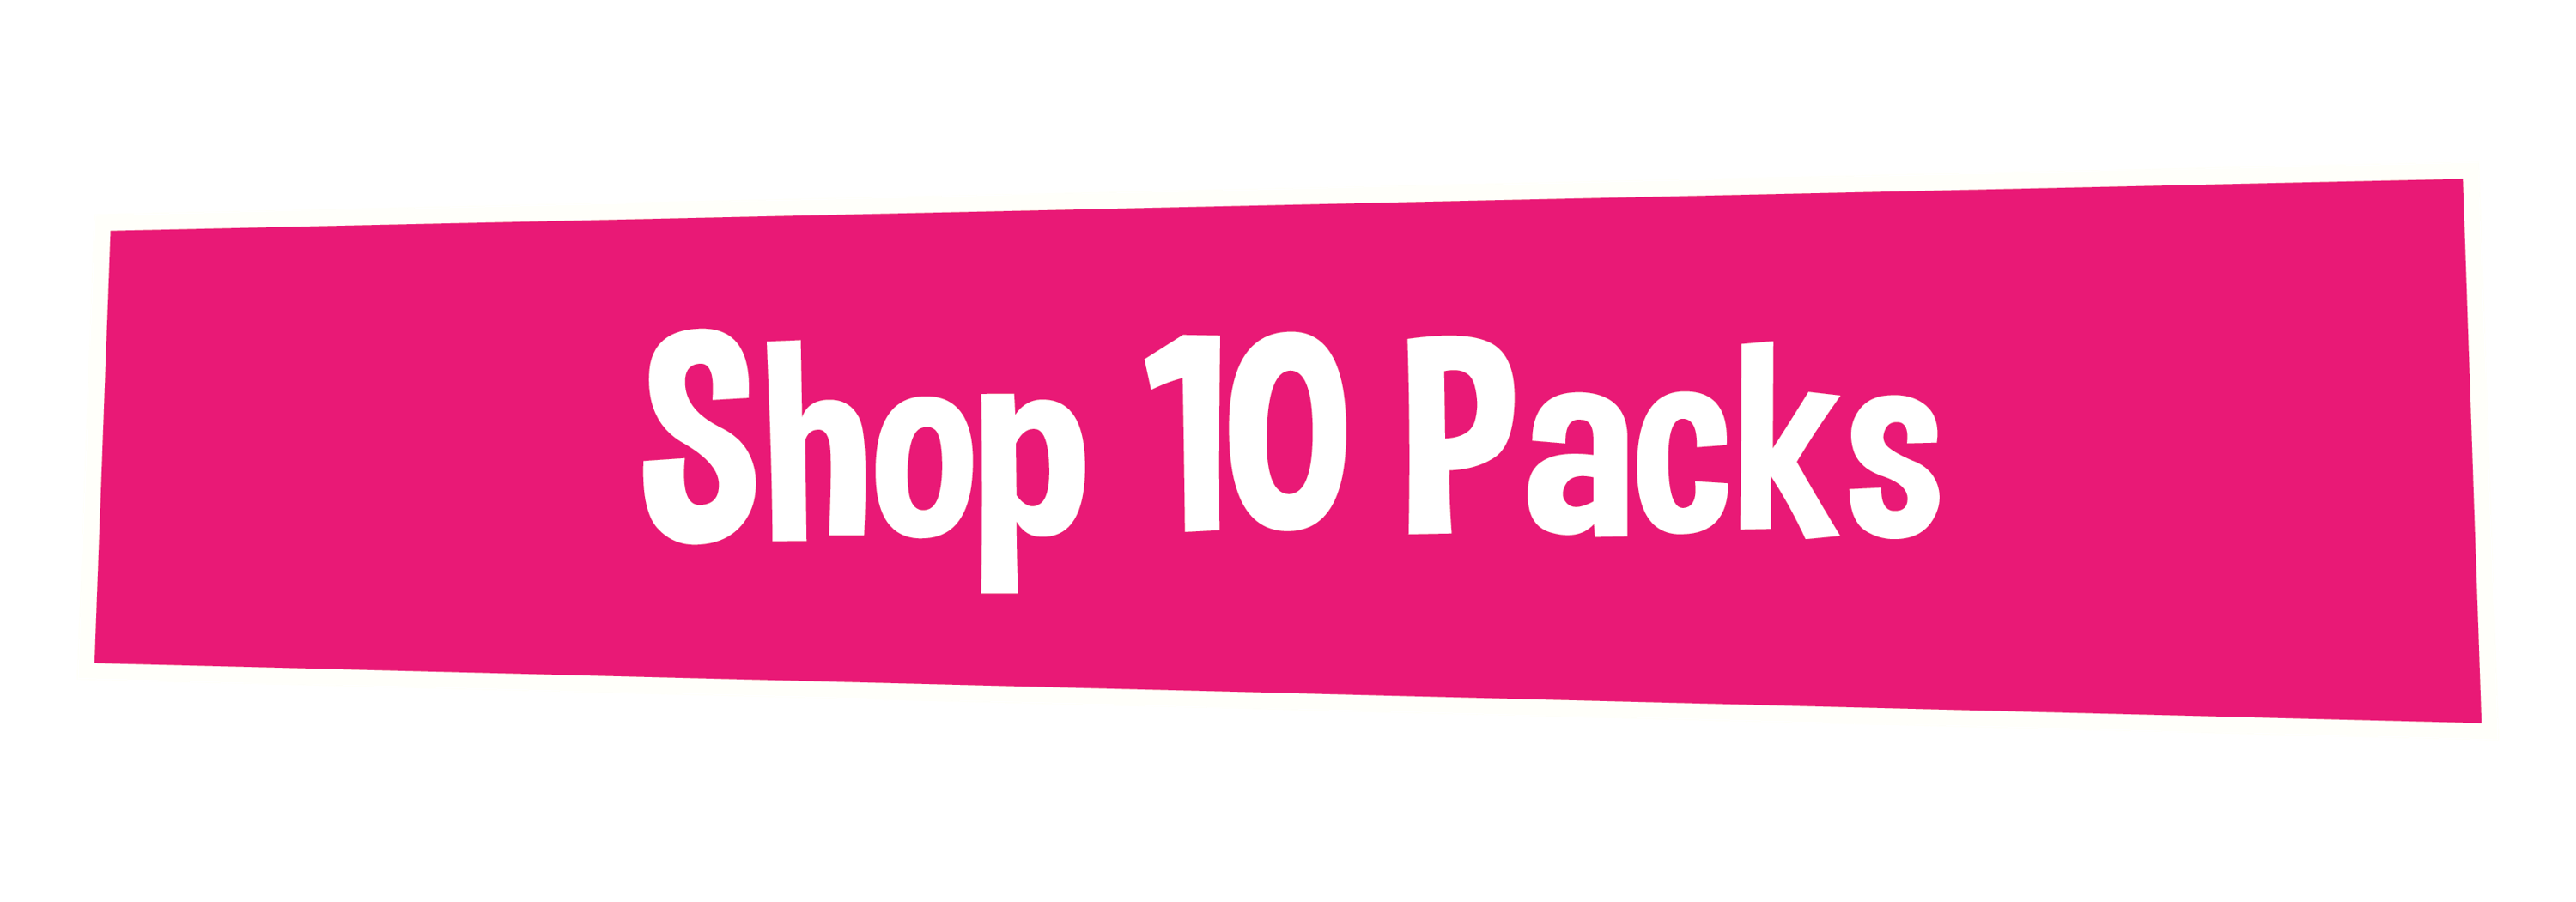 Shop 10 Packs